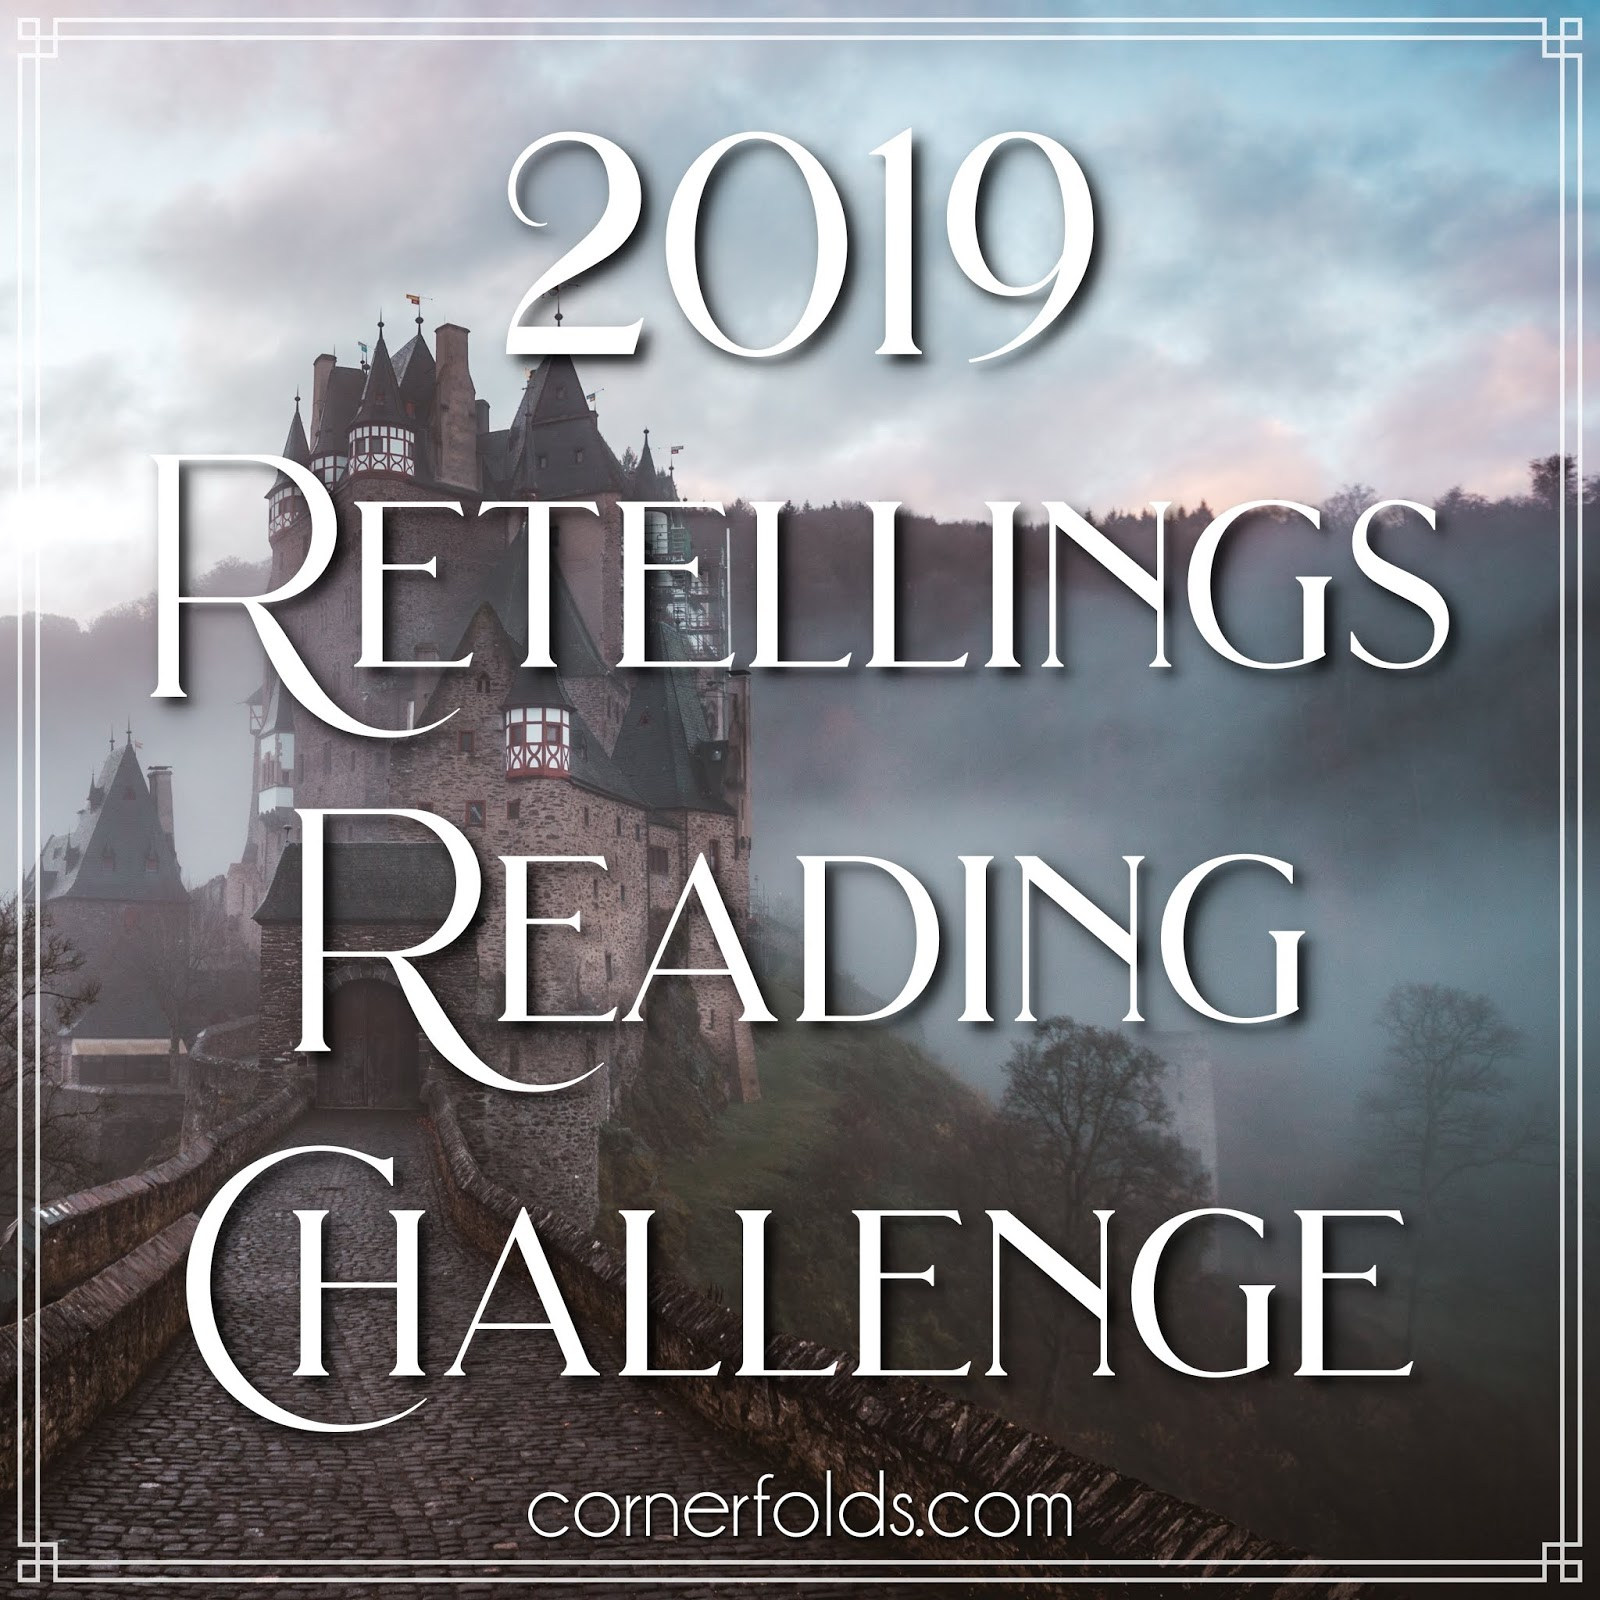 Retellings Reading Challenge